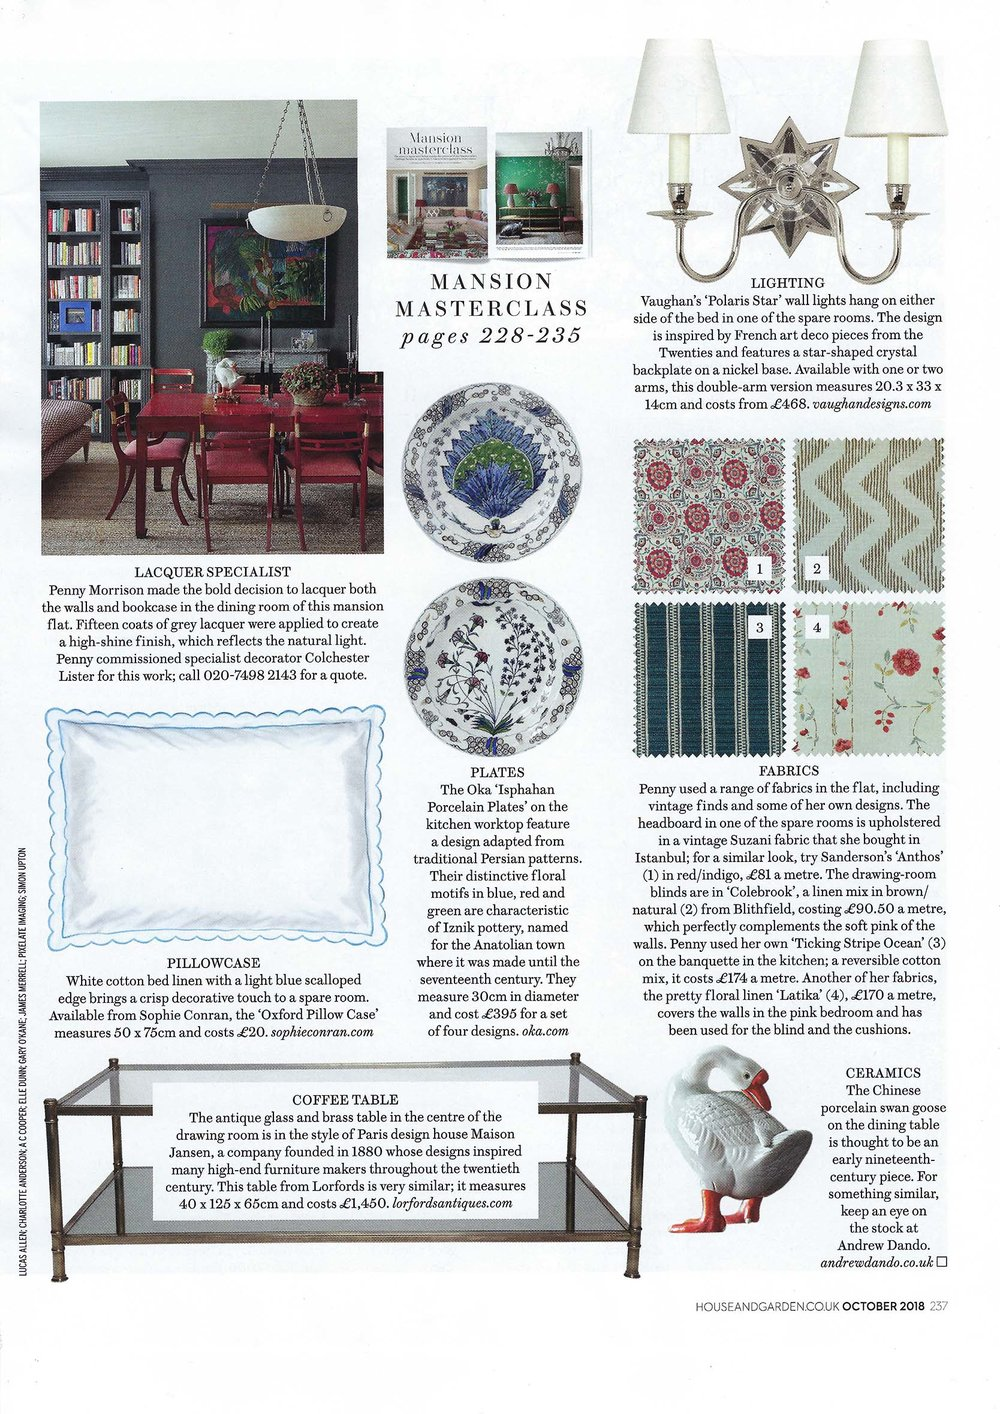 House & Gardens October 2018 copy.jpeg